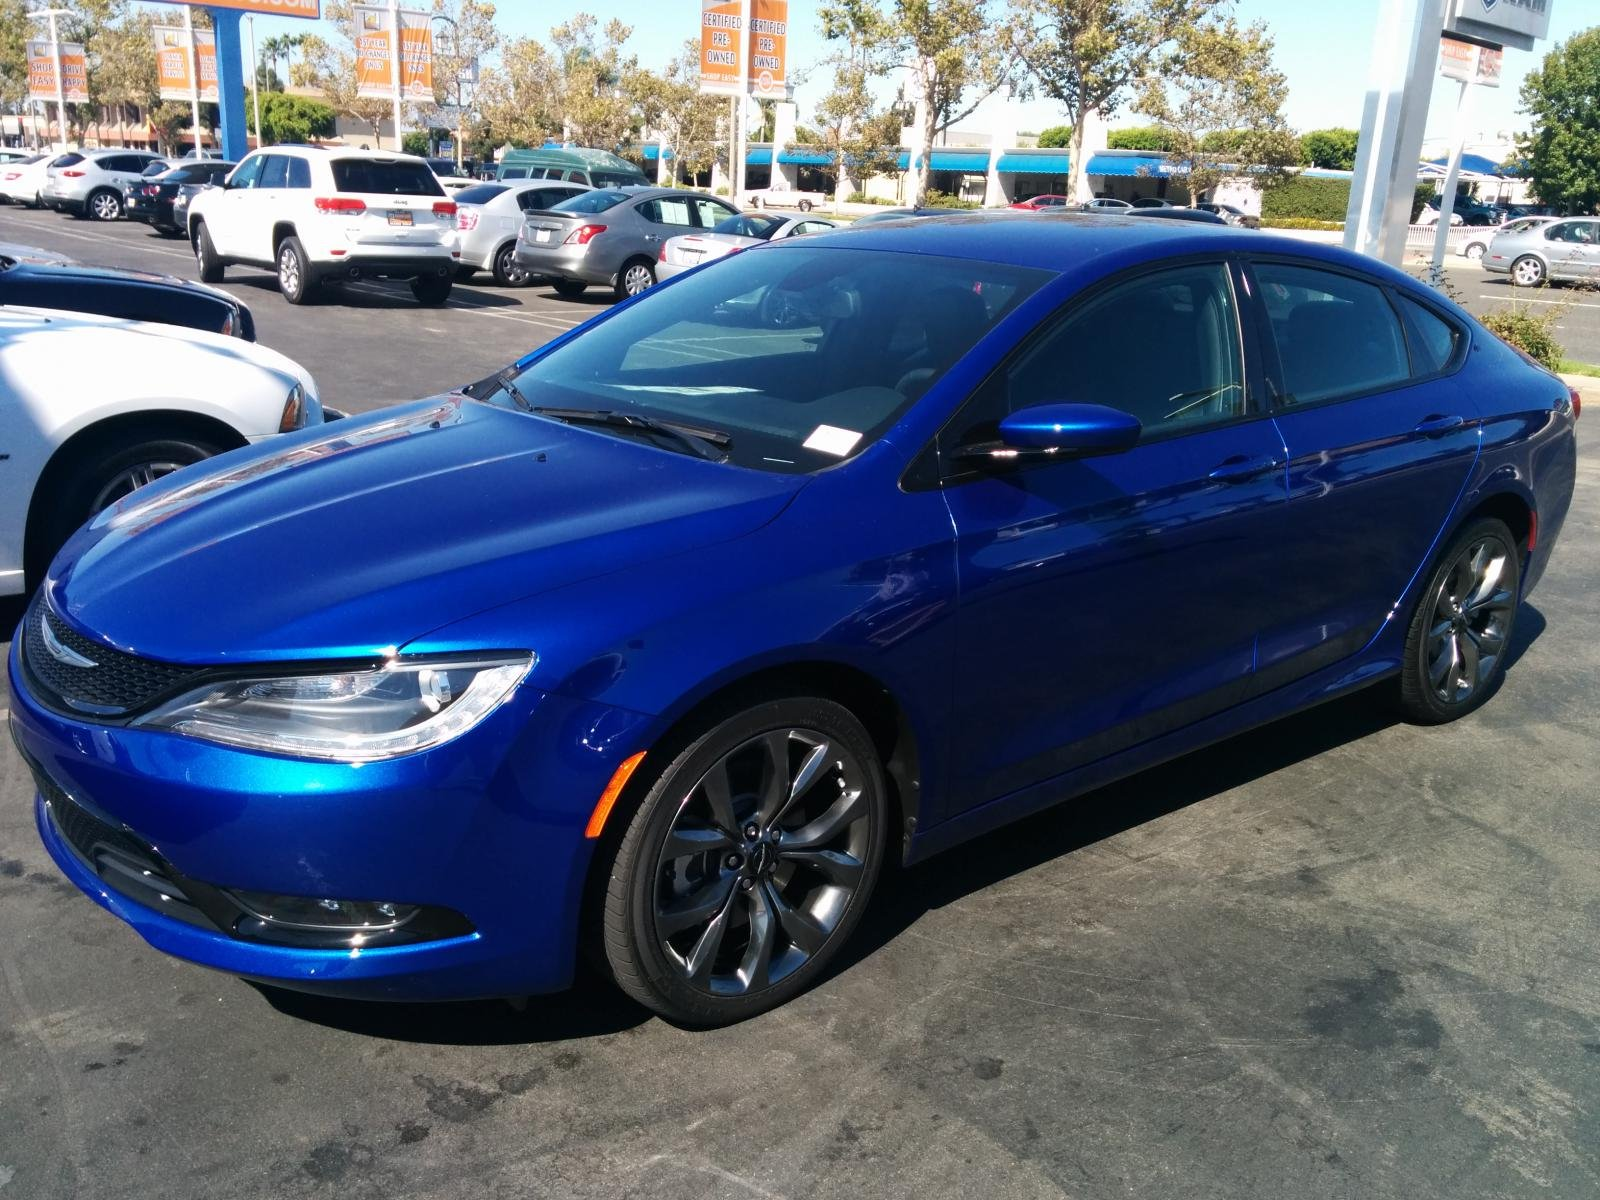 New 200s Awd Vivid Blue Owner Here